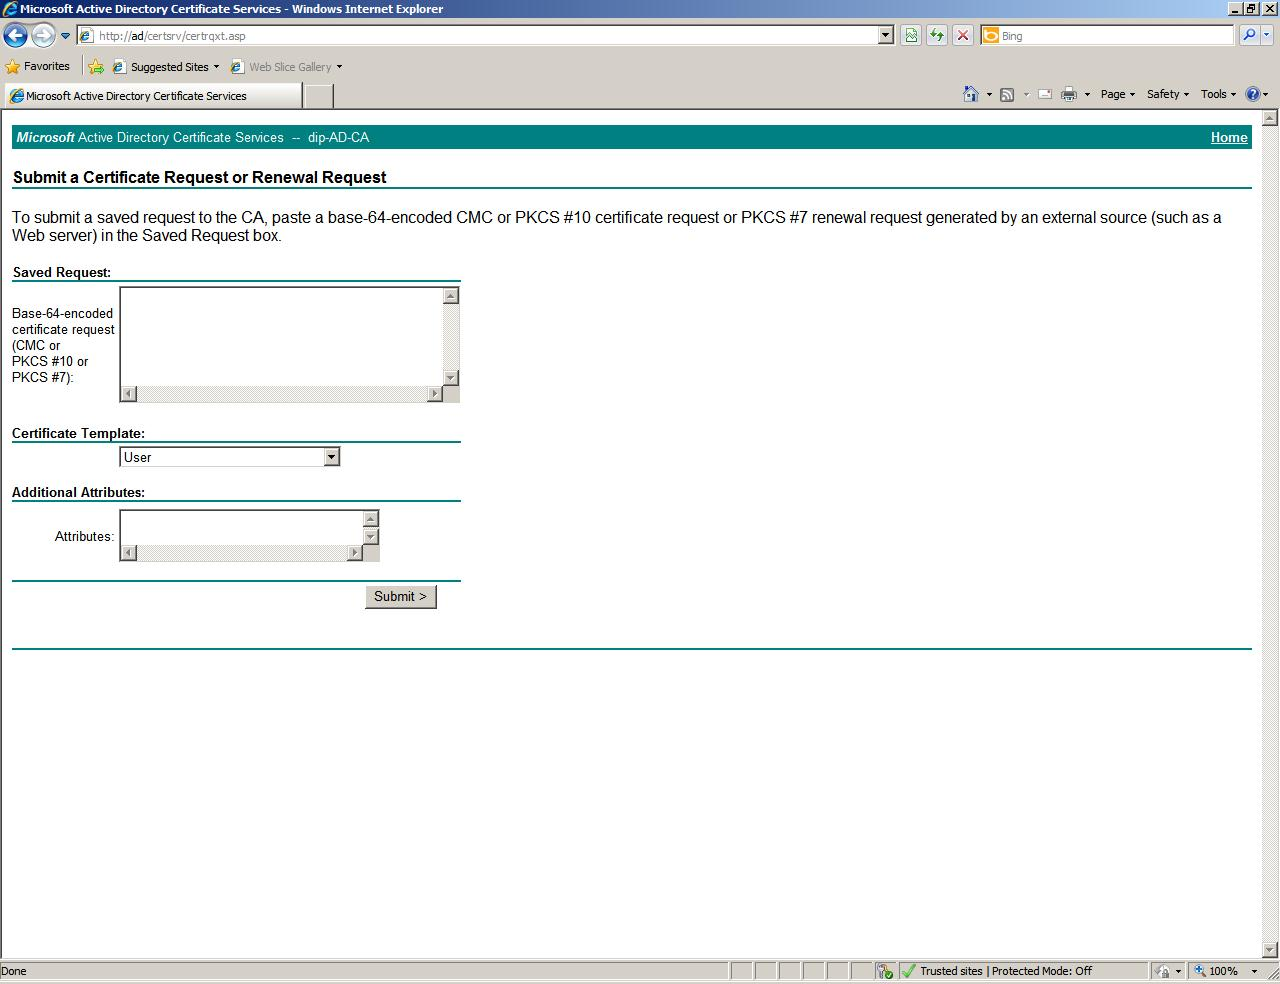 Web server certificate template choice image templates example in exchange 2010 now have san certificate creation facility for after creating cer file and copy yelopaper Image collections